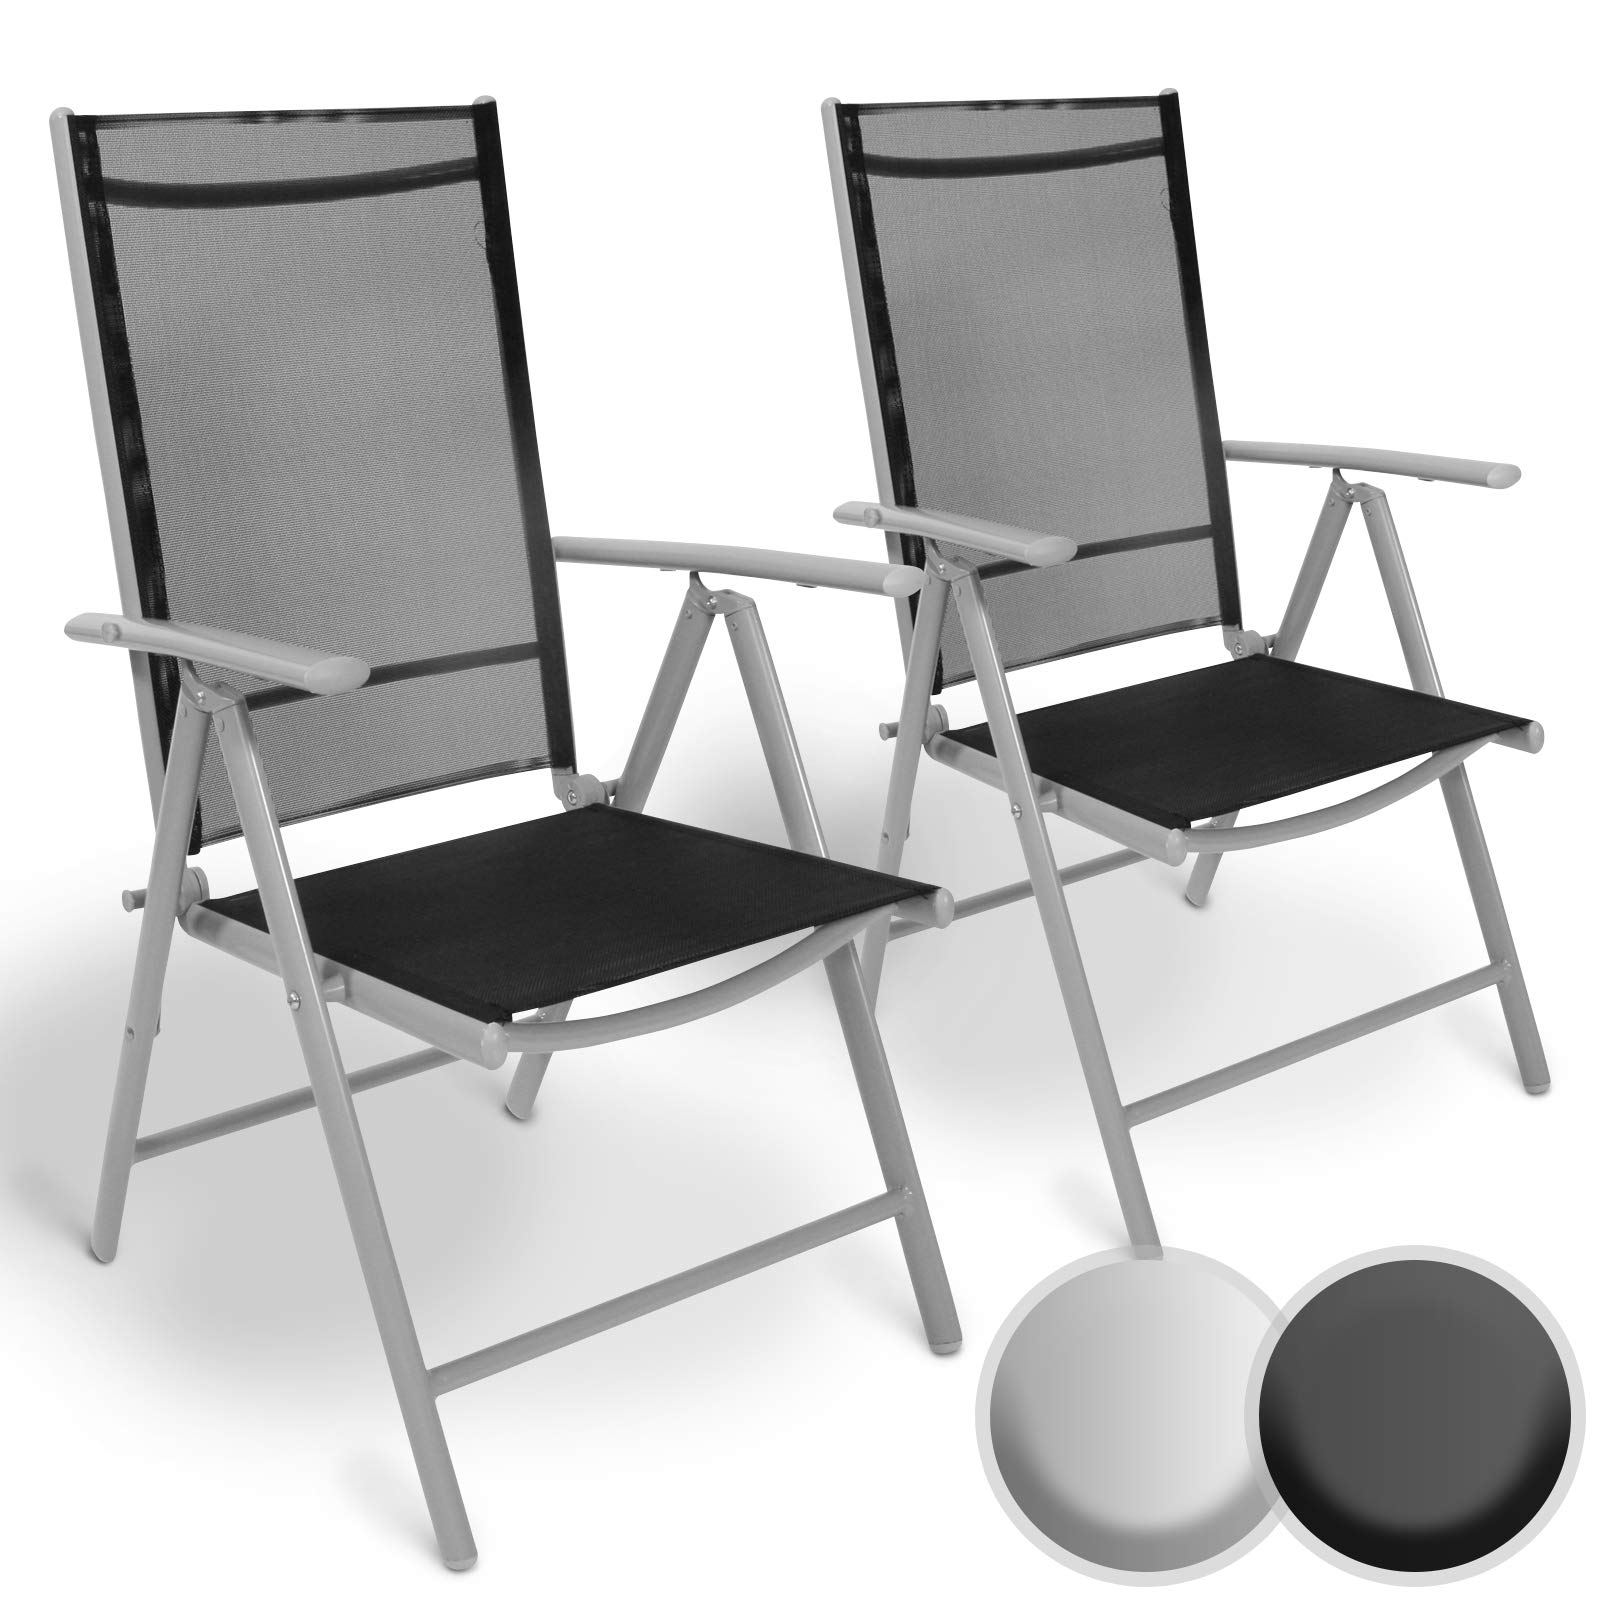 MIADOMODO Aluminium Folding Garden Chairs - with Armrests, High Backrest  Adjustable in 8 Positions, 8x8 Thread - Recliner Chair Outdoor Camping